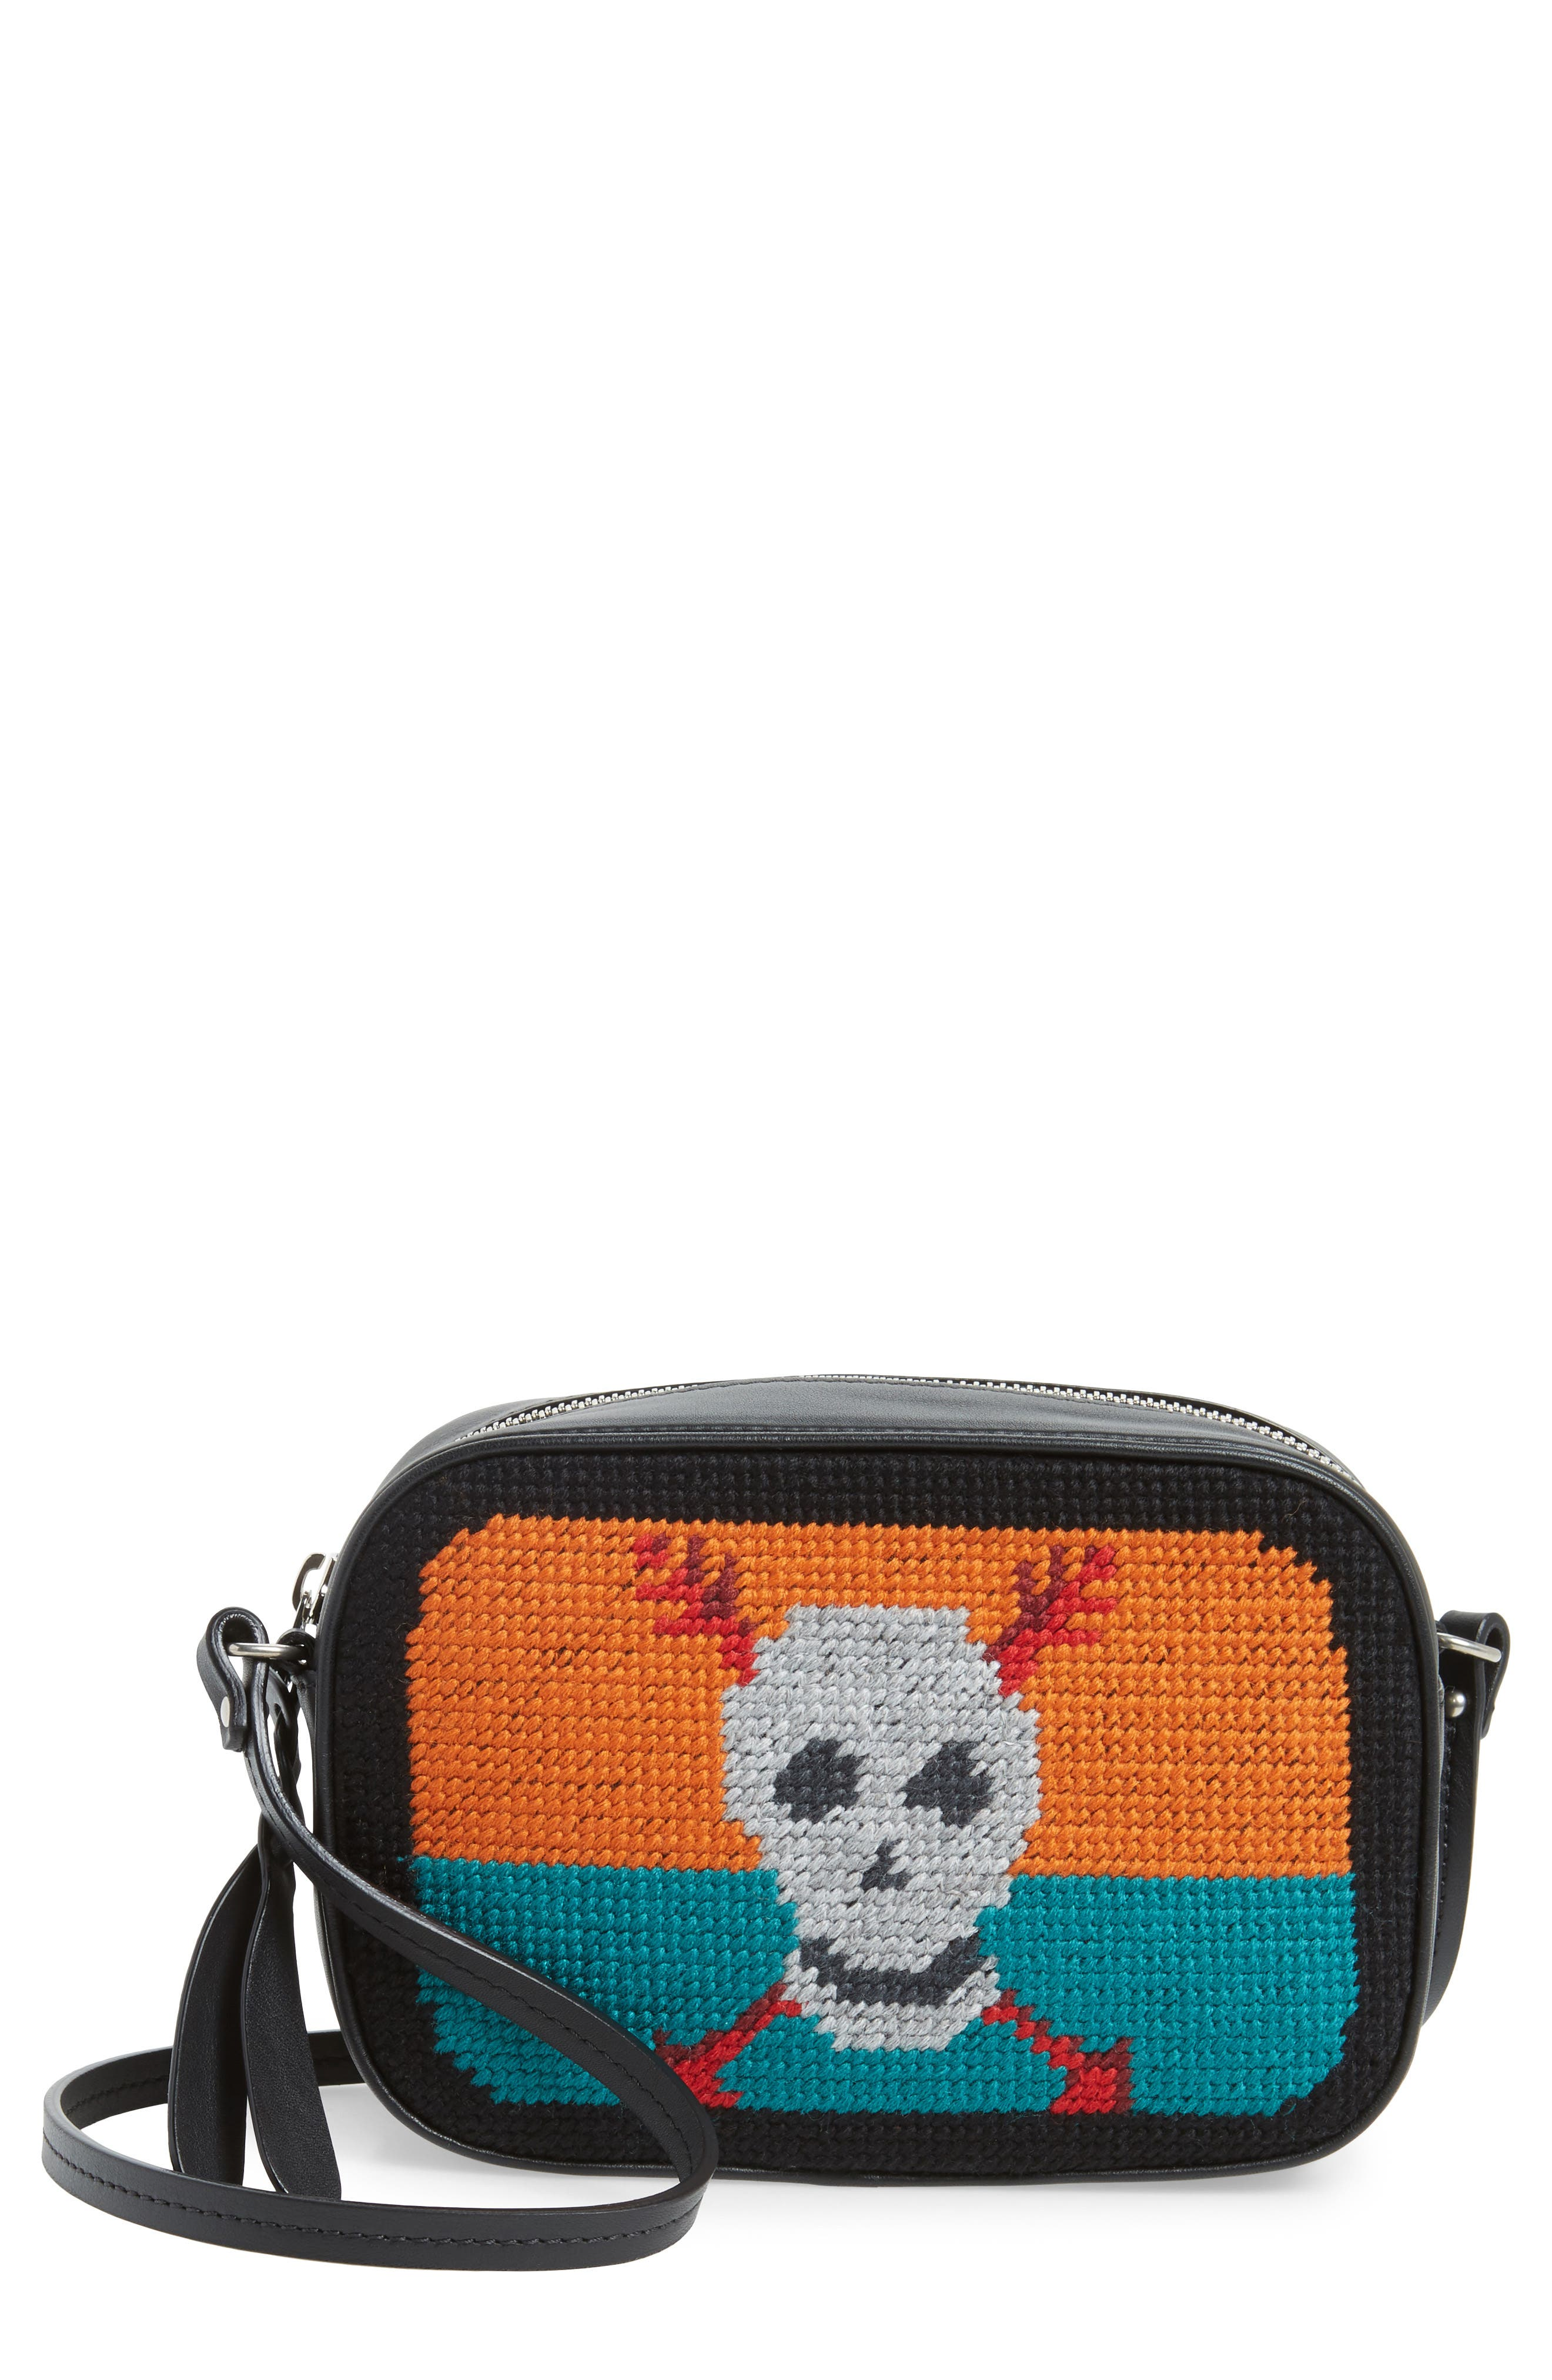 Alternate Image 1 Selected - Alexander McQueen Small Embroidered Leather Camera Bag